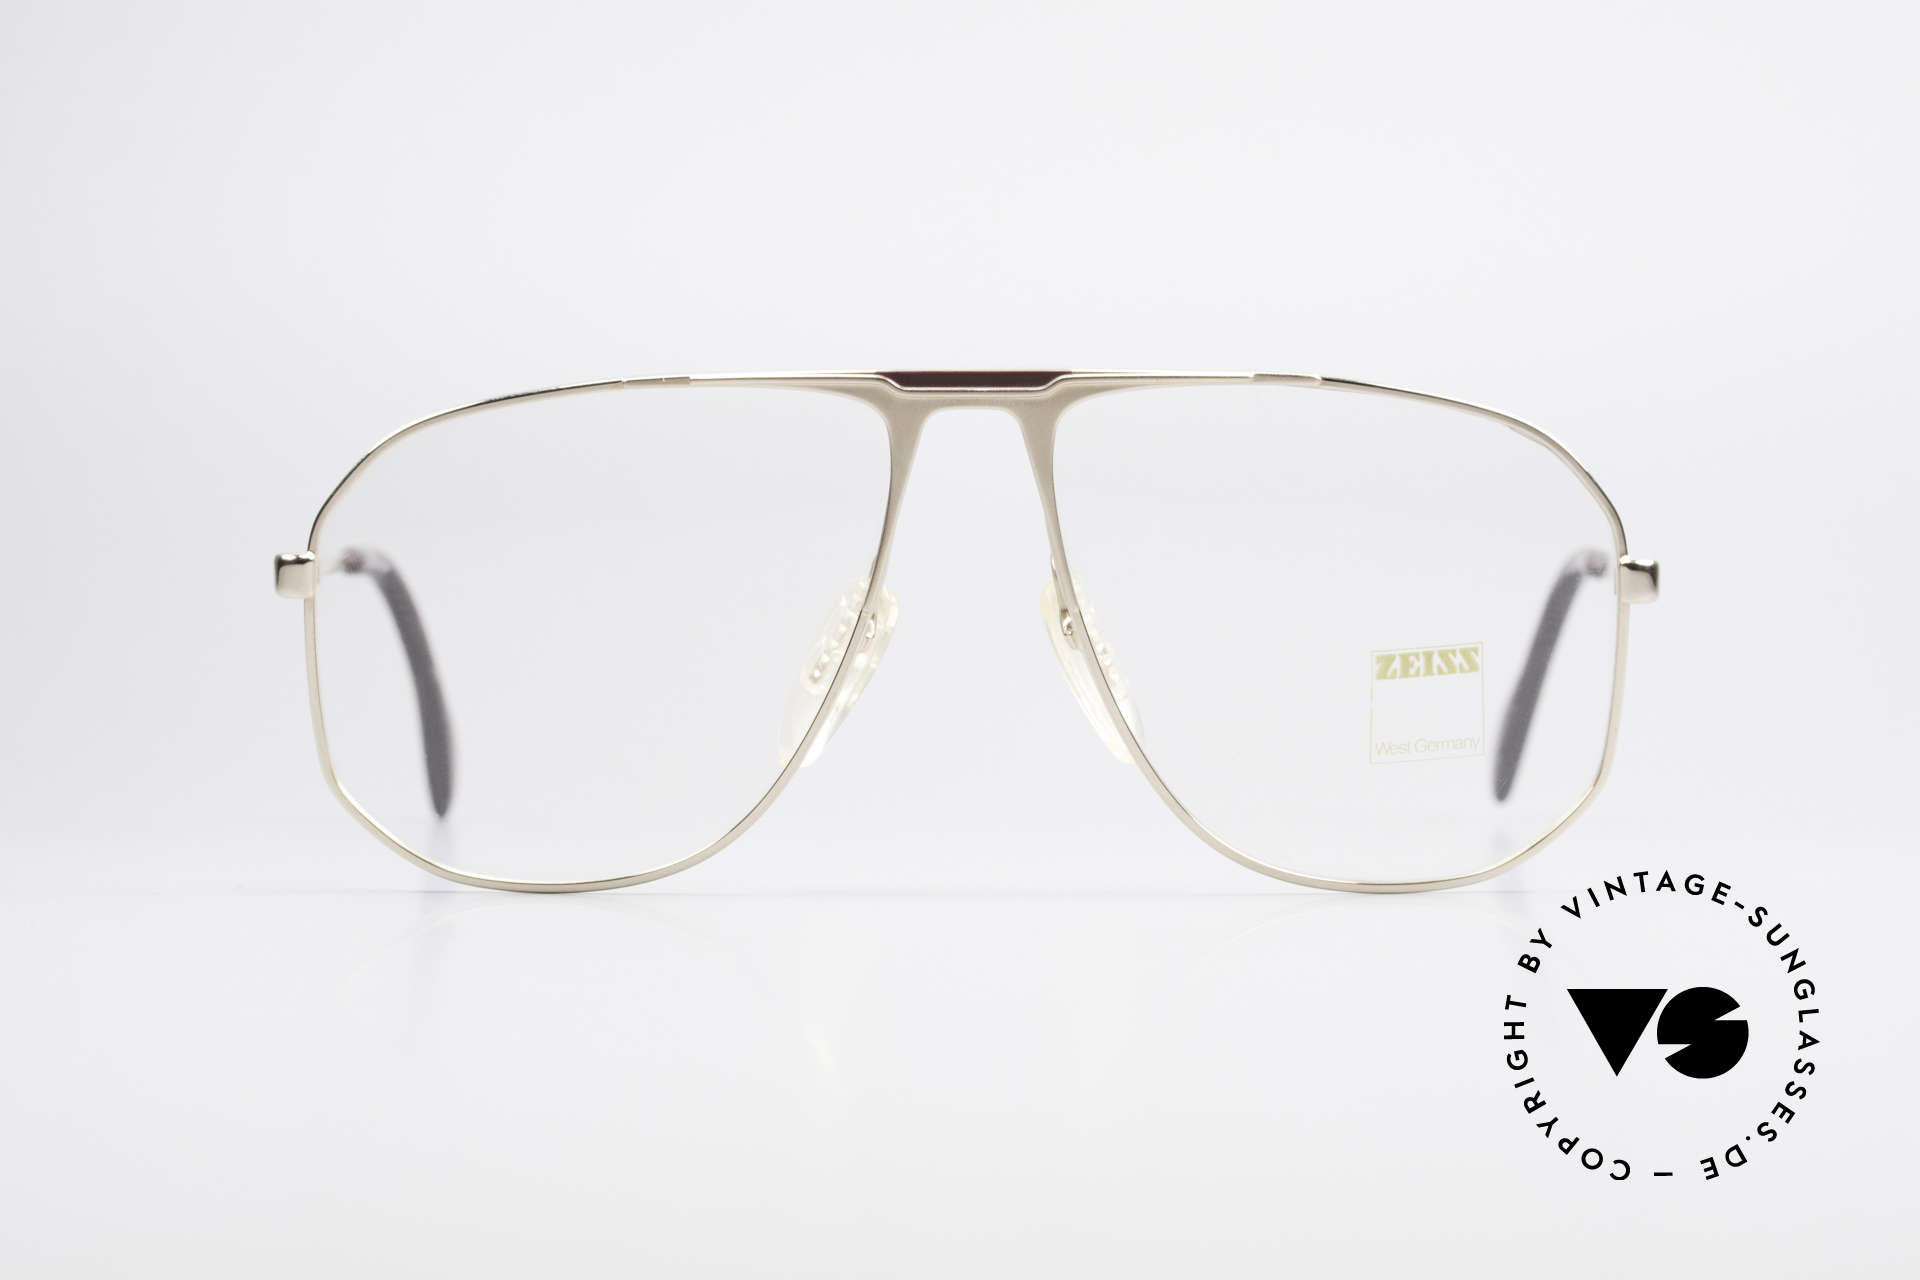 Zeiss 5871 80's West Germany Frame Men, outstanding craftsmanship - made in WEST GERMANY, Made for Men